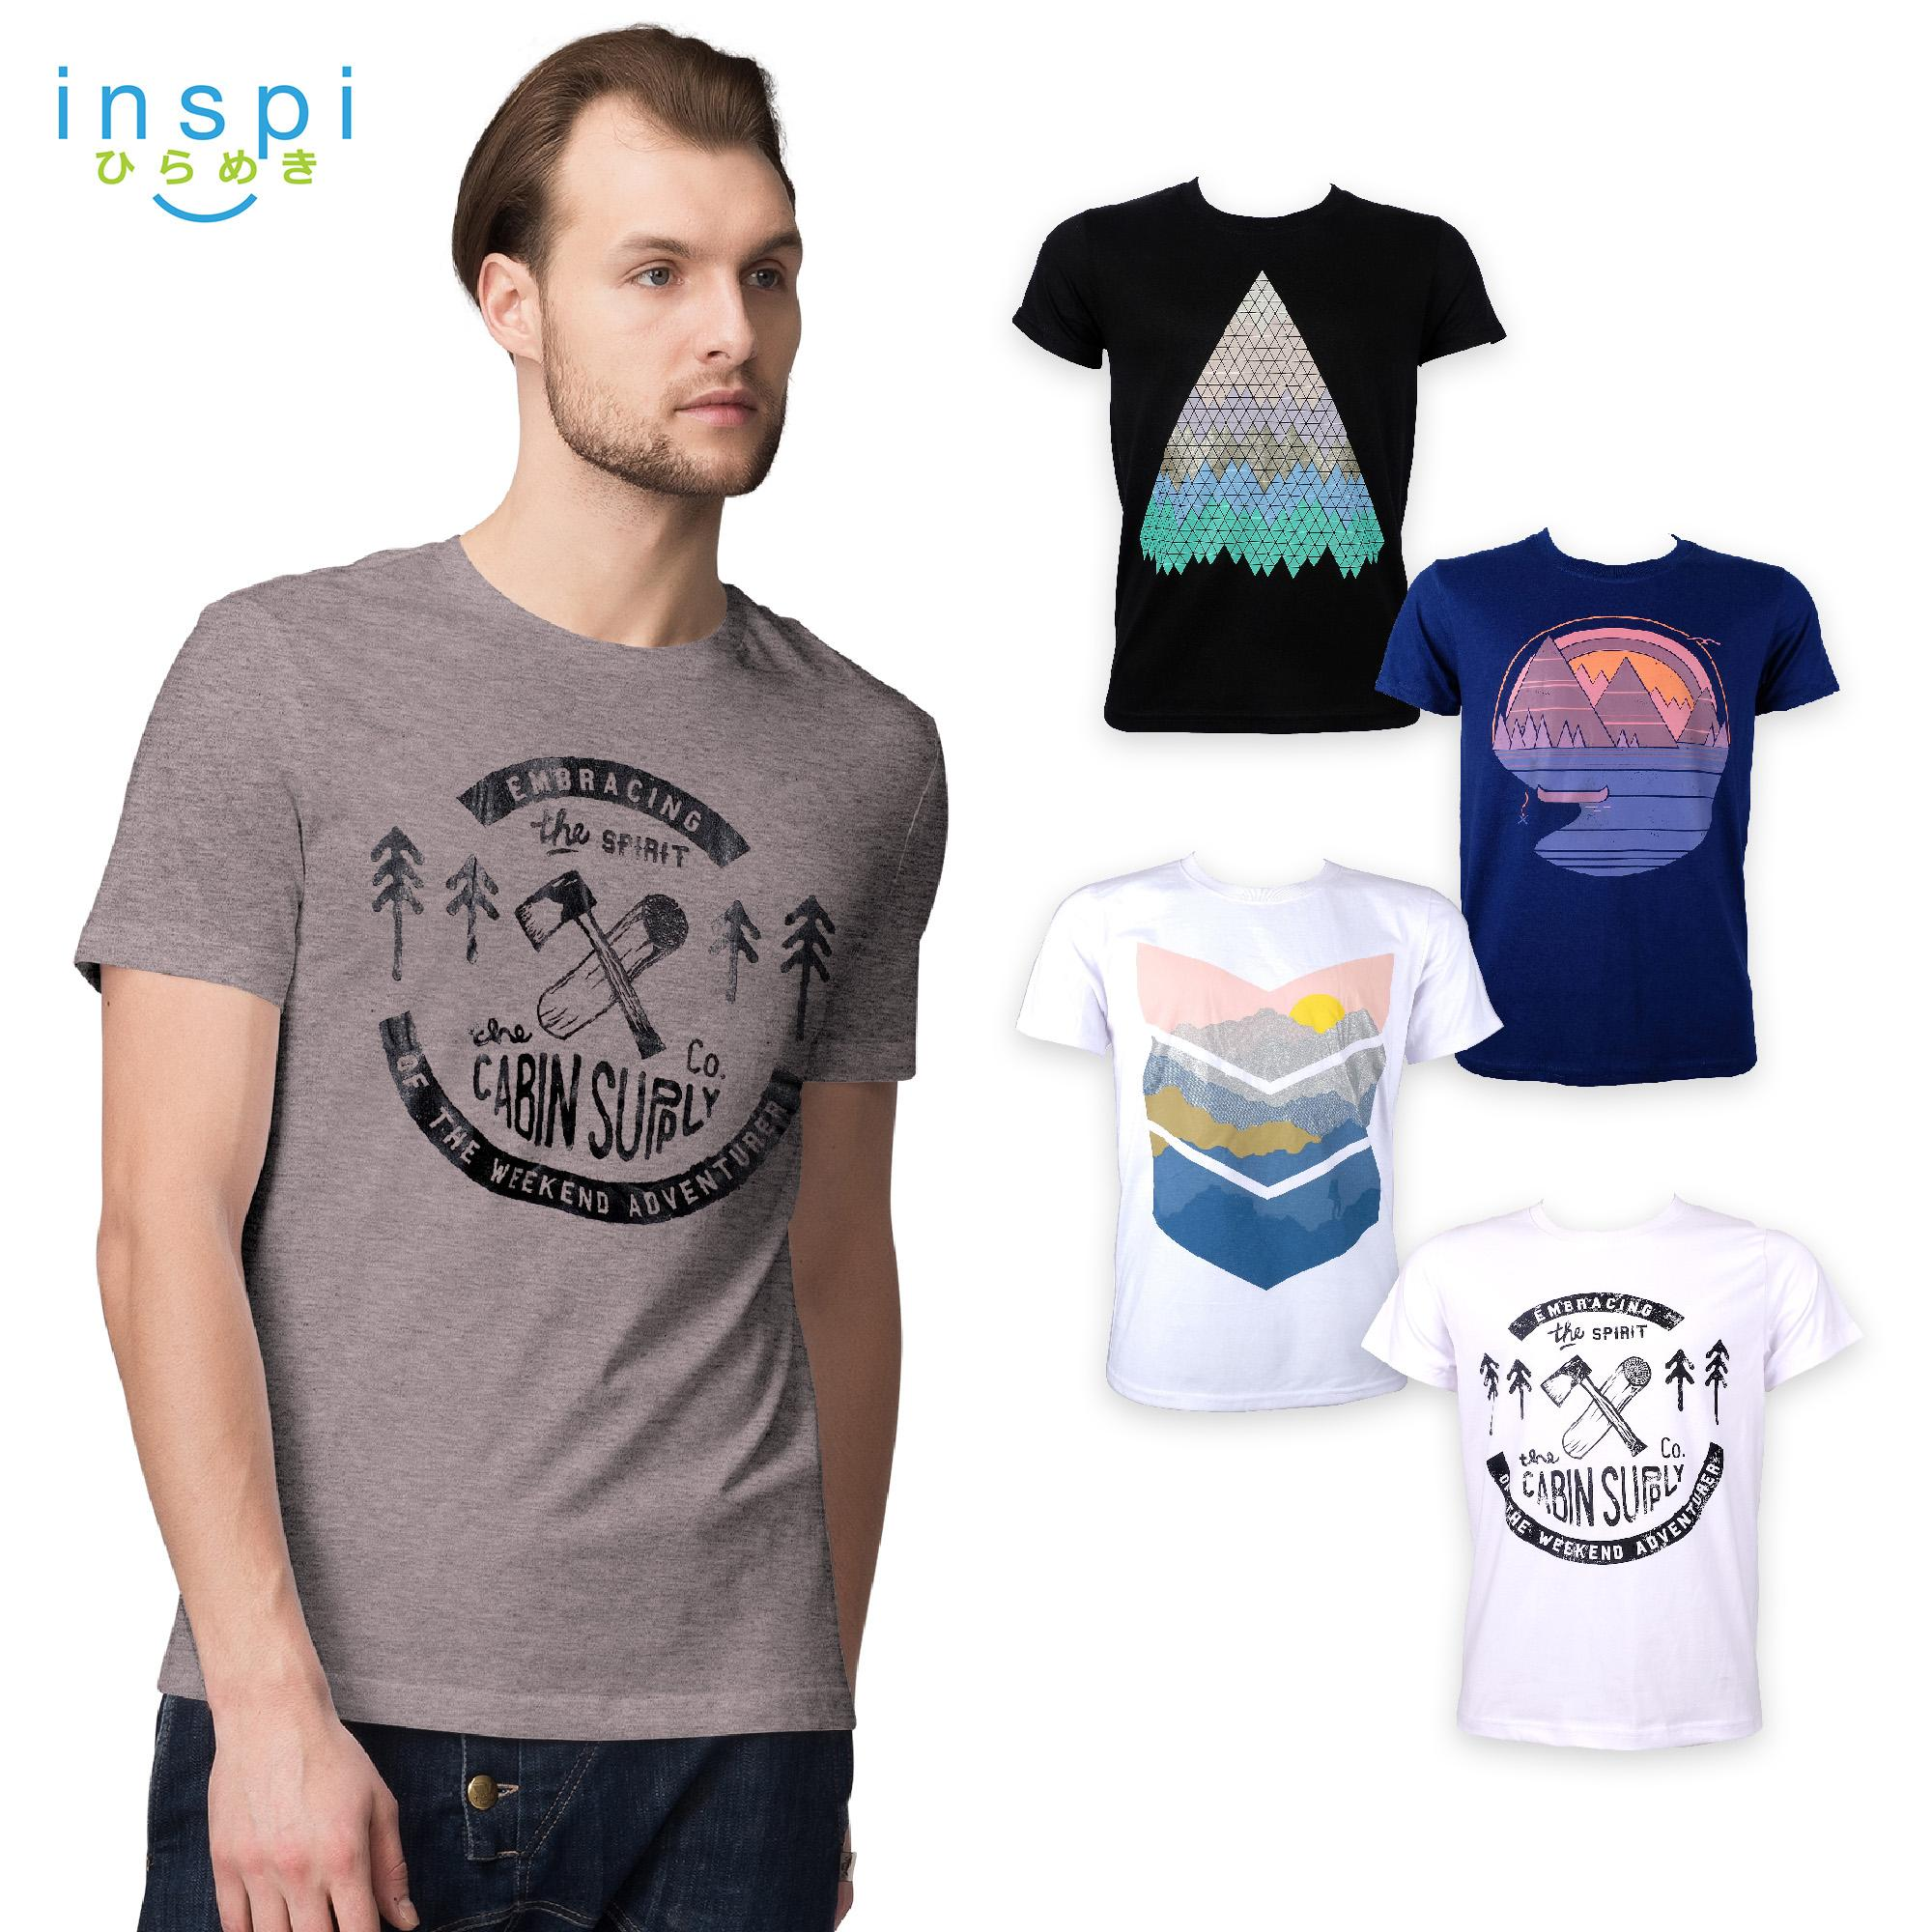 wholesale dealer 7054c 0edd0 INSPI Tees Outdoors Collection tshirt printed graphic tee Mens t shirt  shirts for men tshirts sale